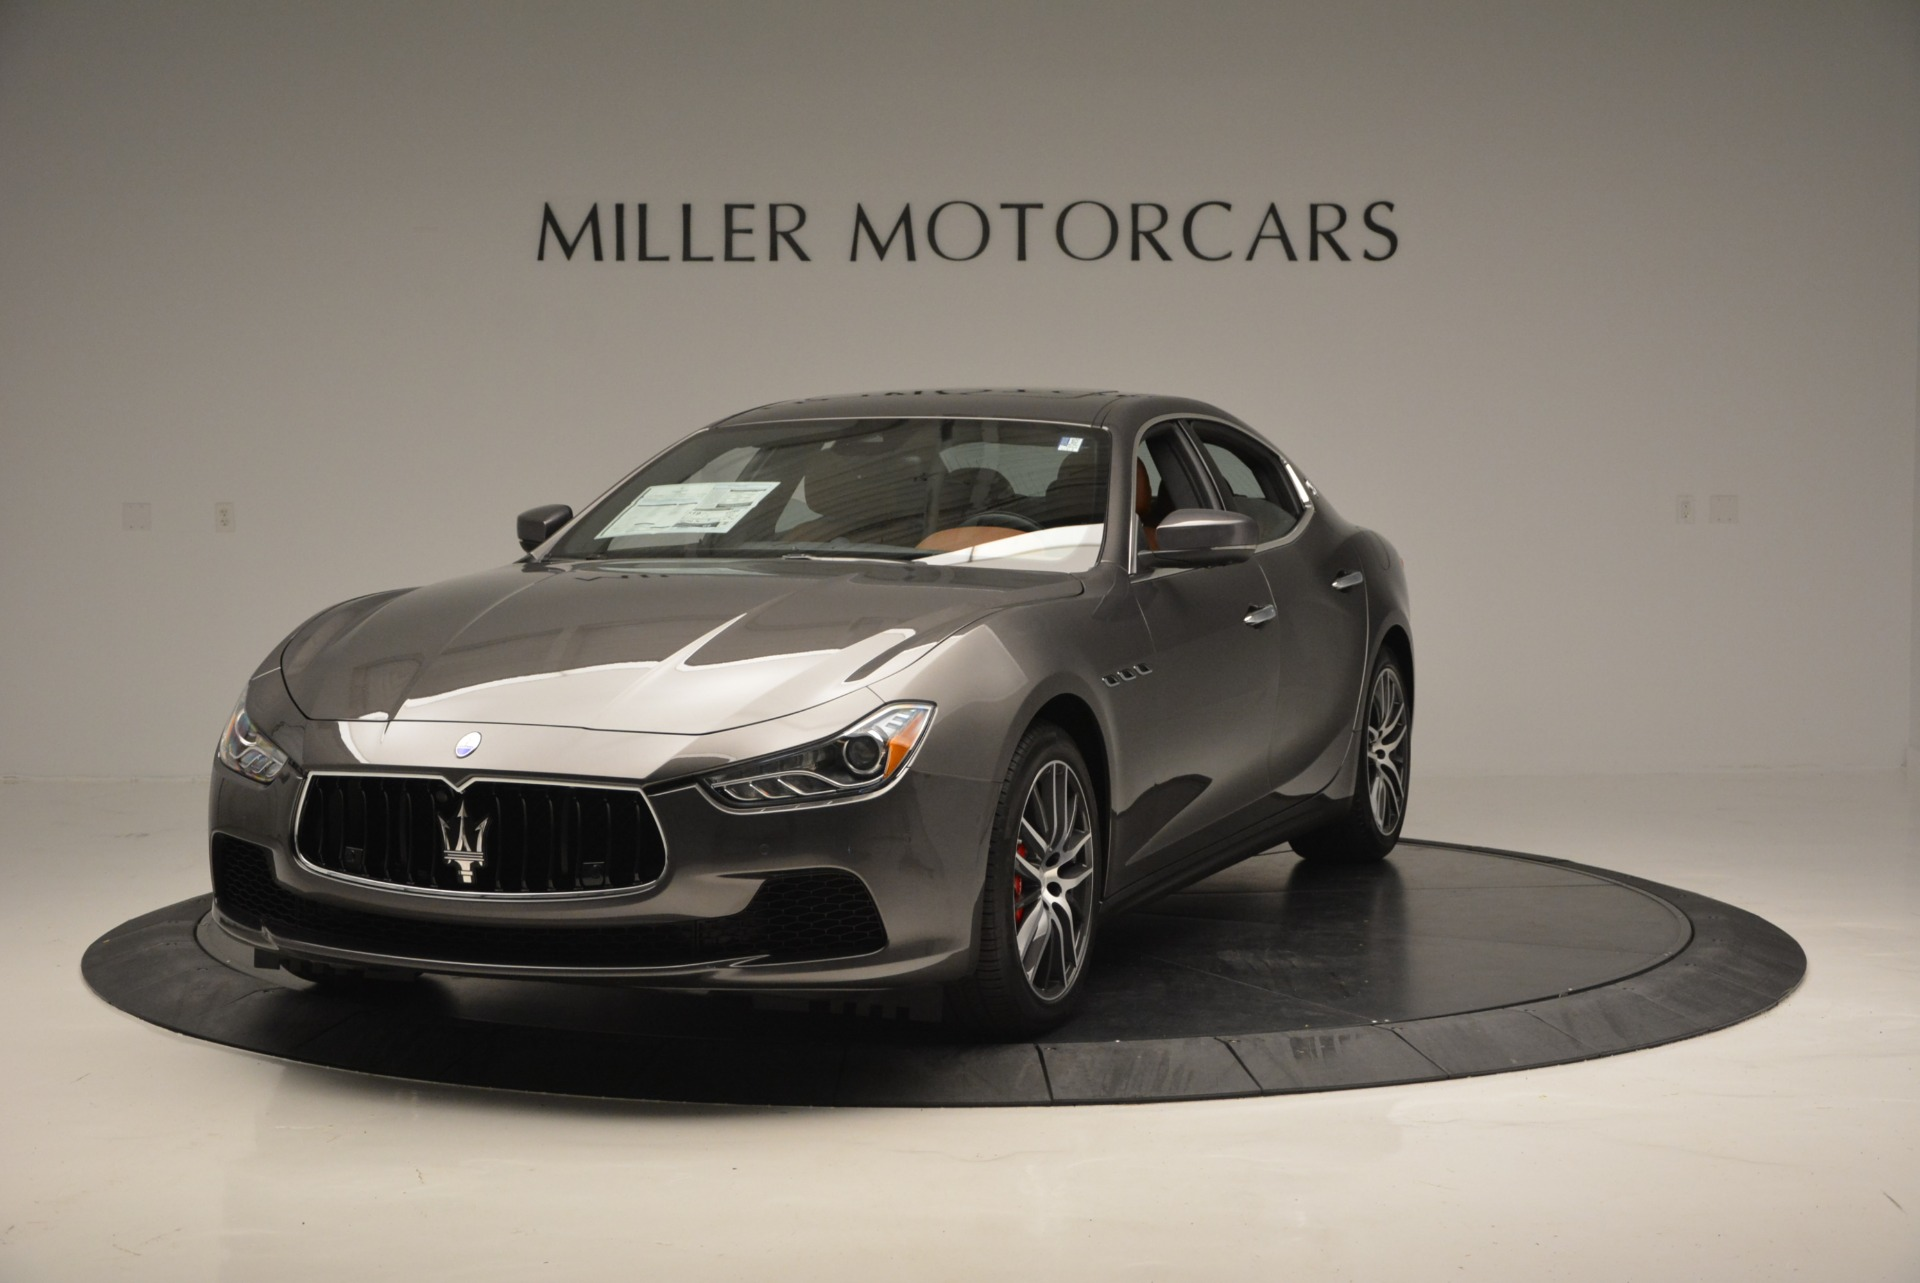 Used 2018 Maserati Ghibli S Q4 for sale Sold at Rolls-Royce Motor Cars Greenwich in Greenwich CT 06830 1